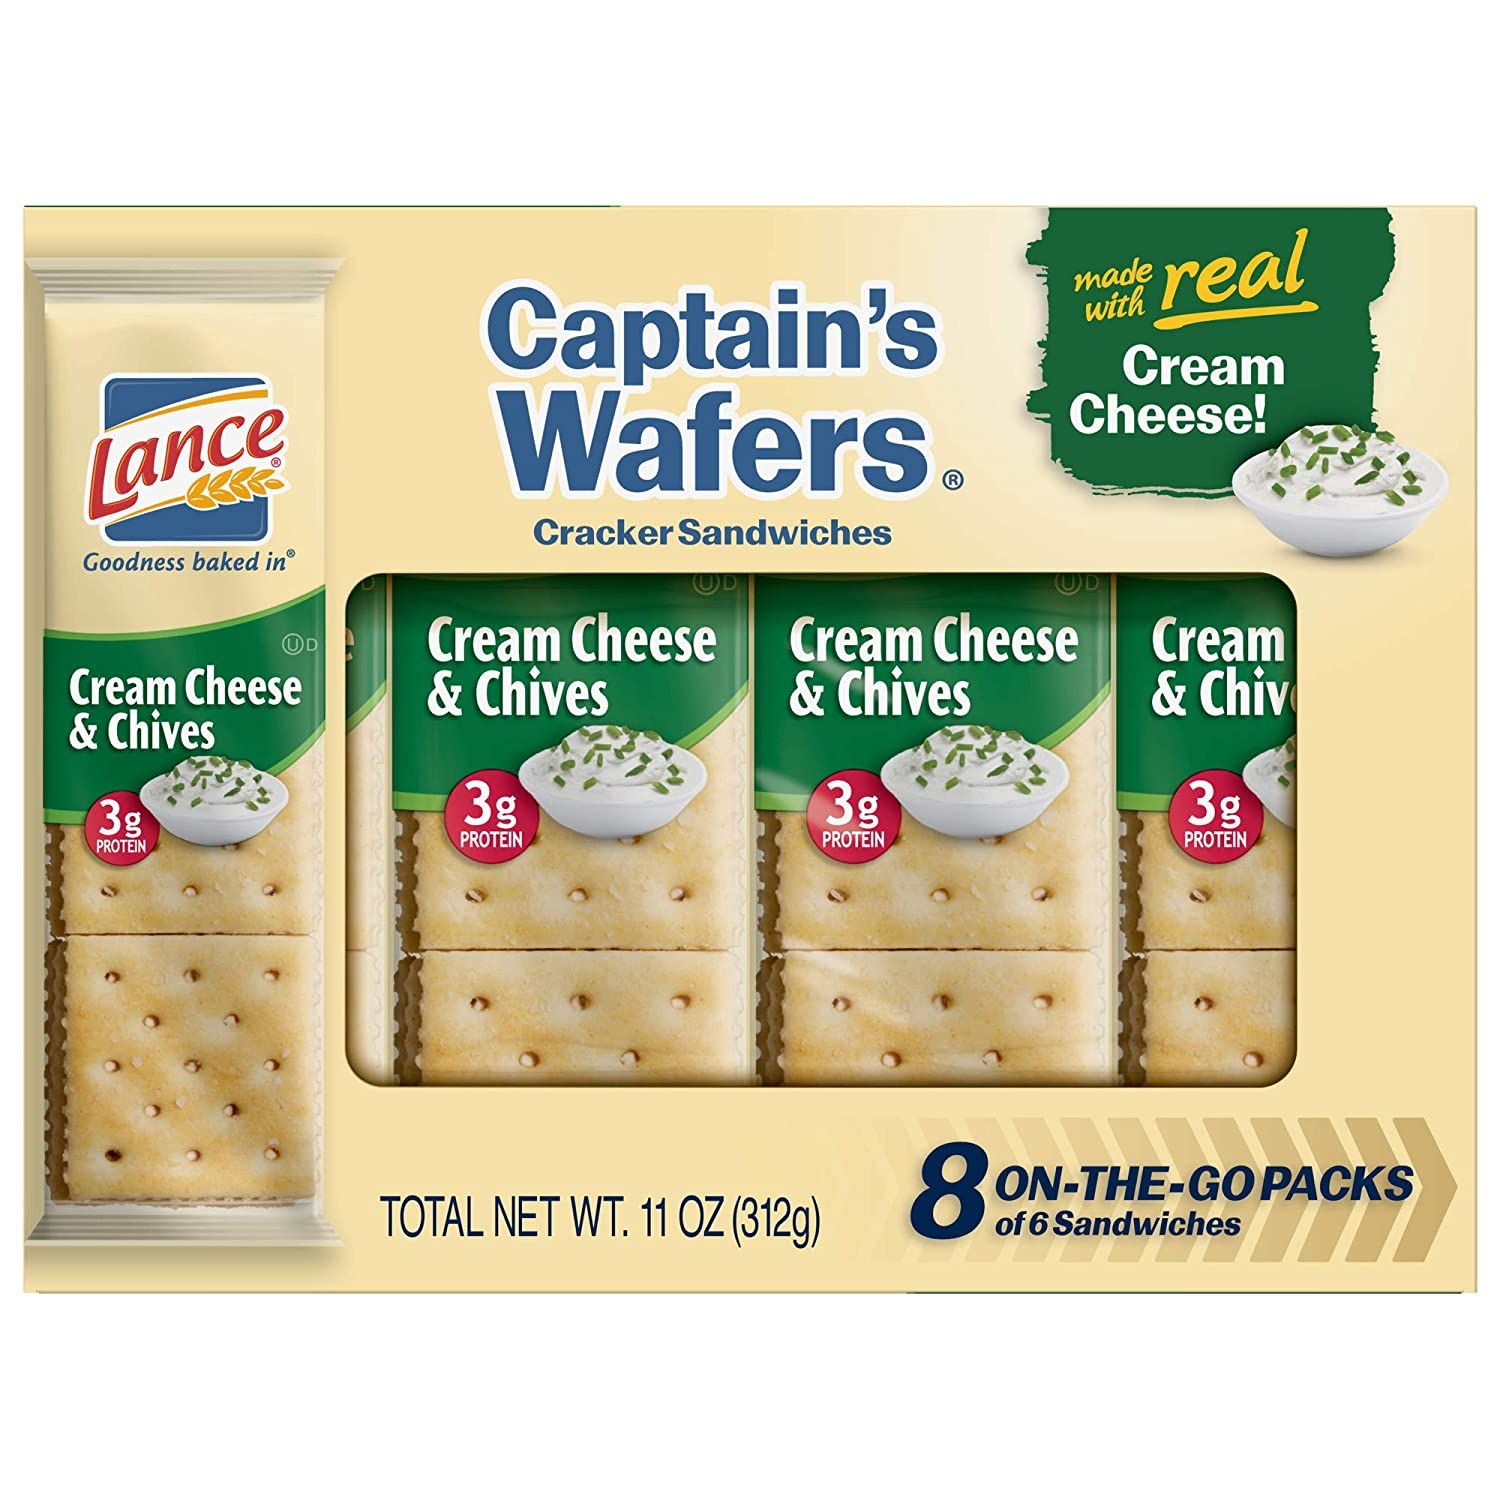 Lance Captain's Wafers Crackers Limited price Cream Financial sales sale - Cheese 3 Boxes Chives